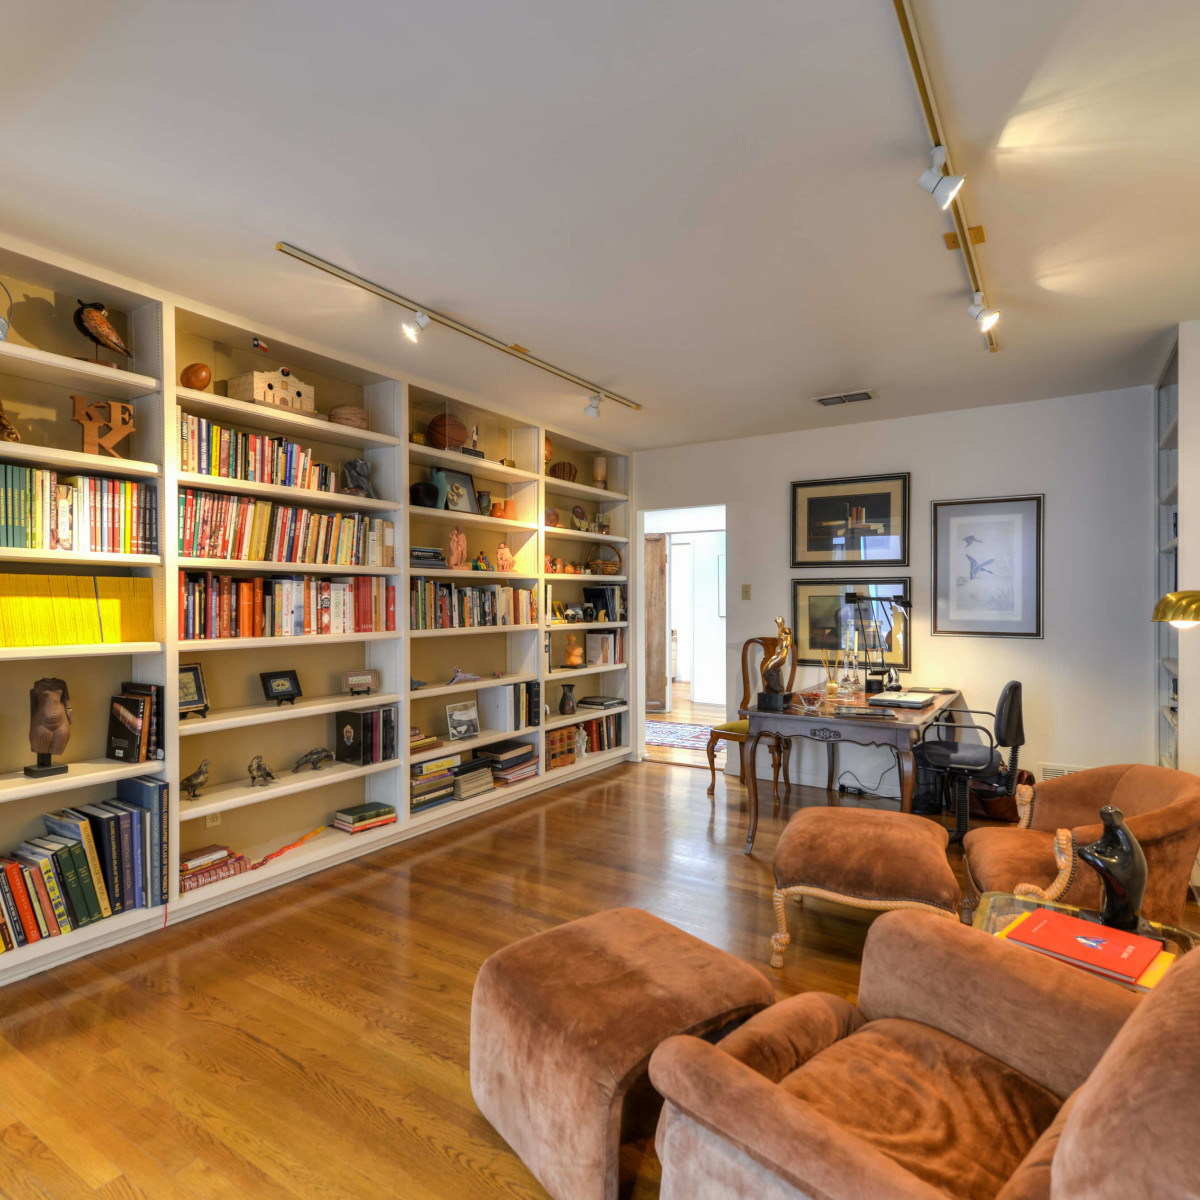 7887 New Braunfels San Antonio house for sale library